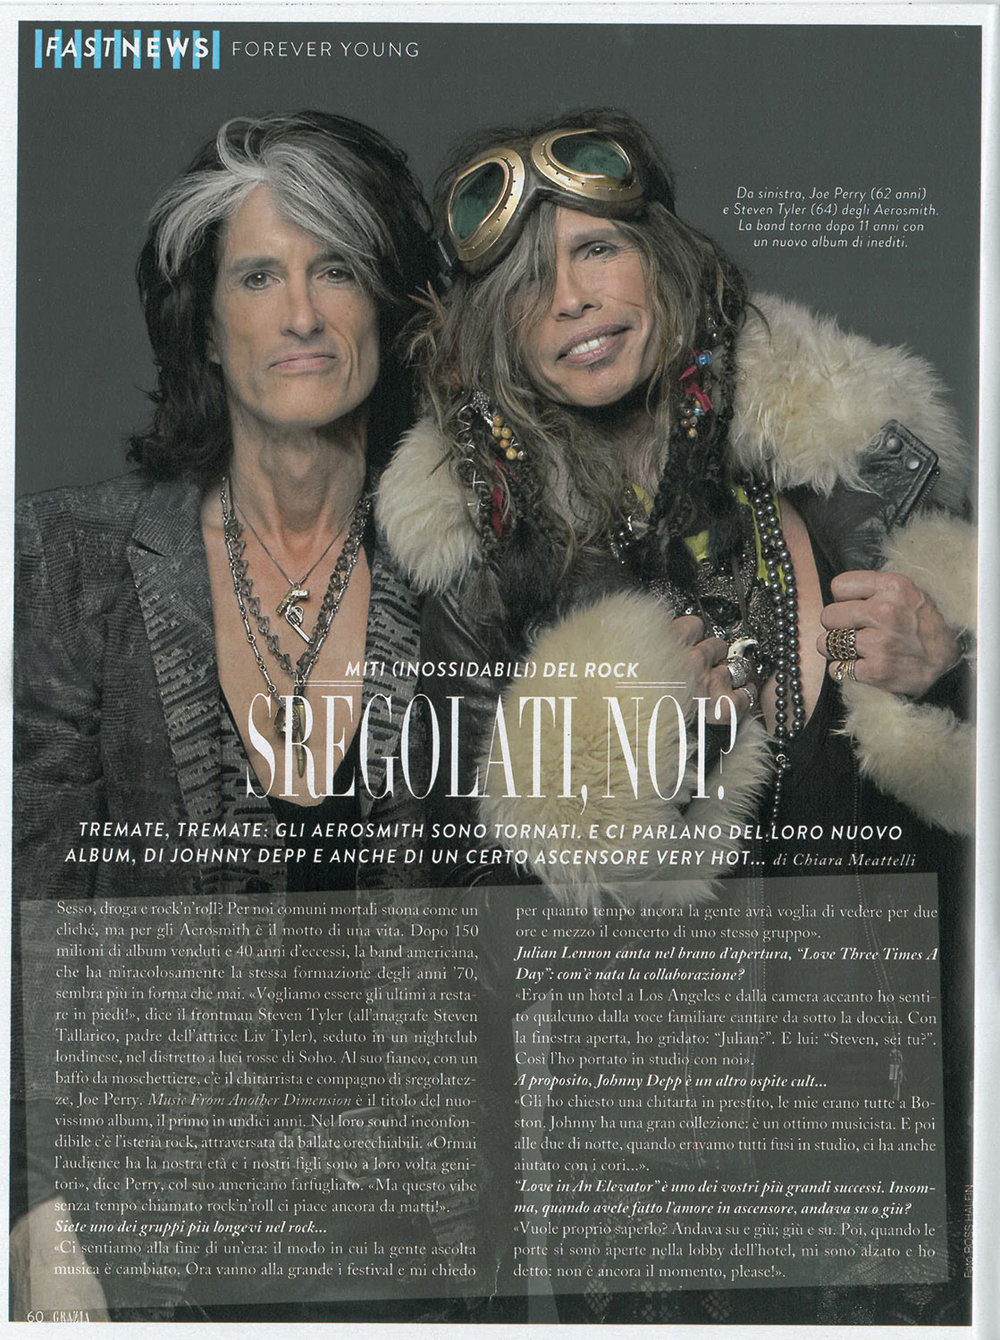 Grazia: Aerosmith interview